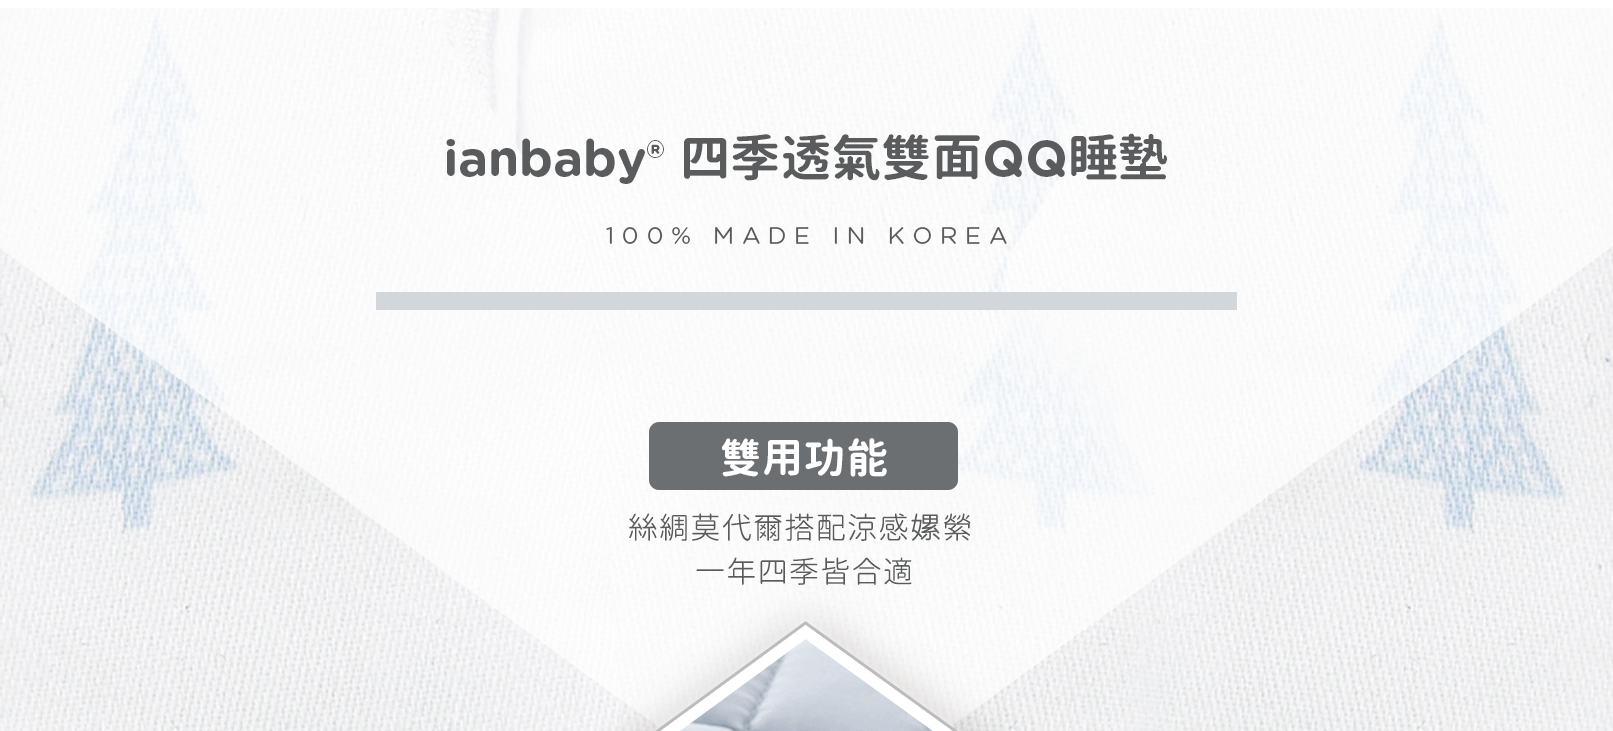 ianbaby-RM-G_08.png